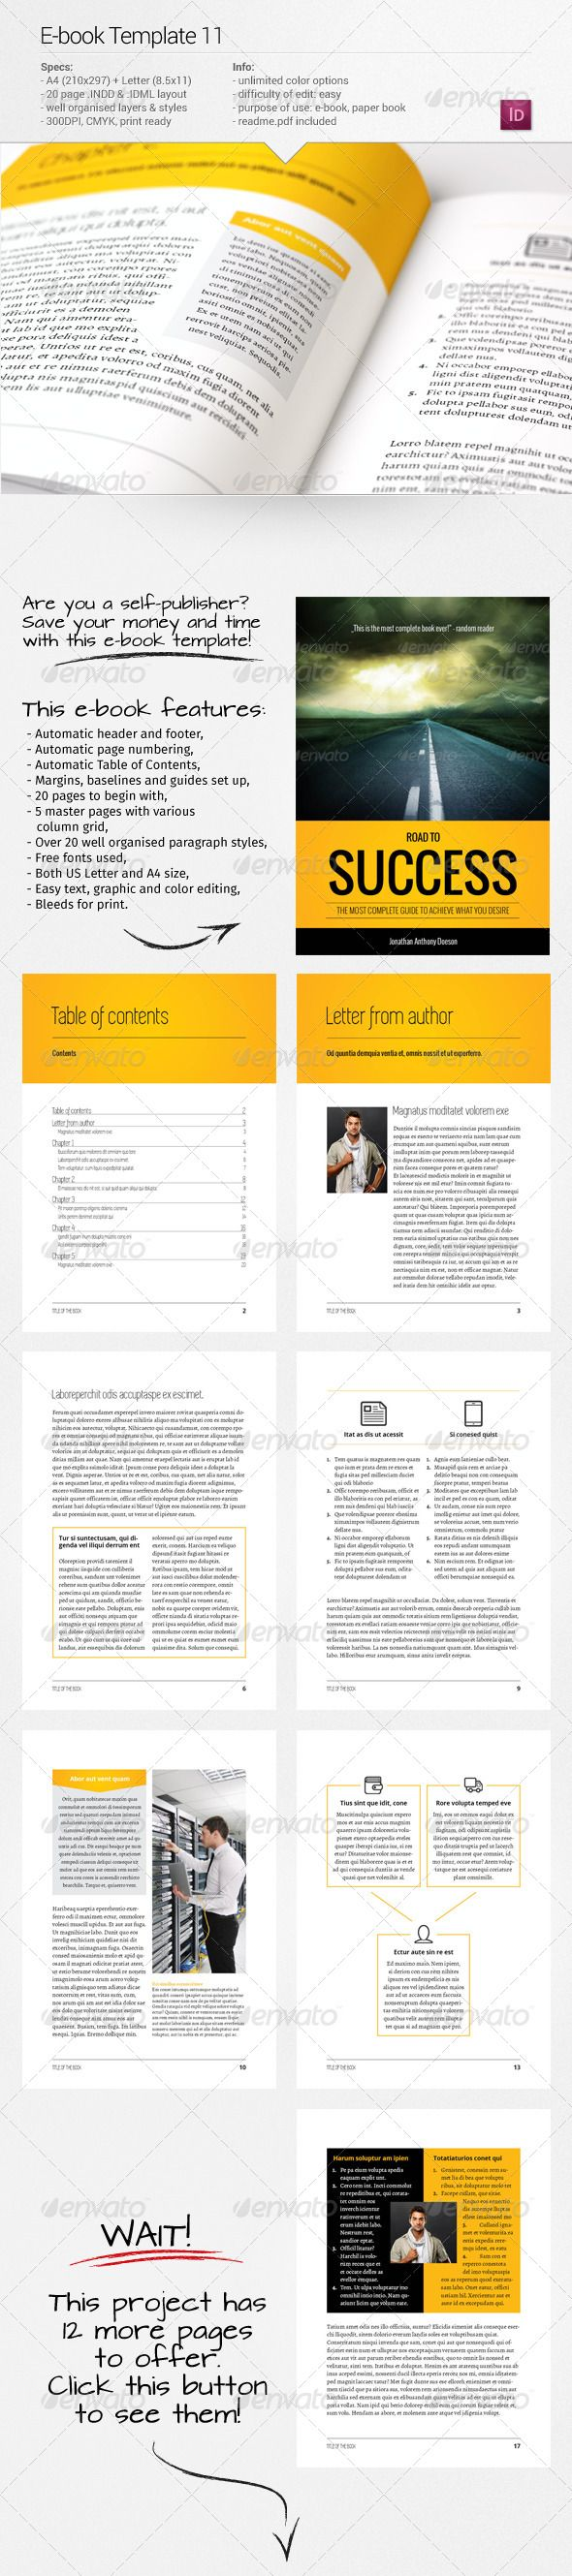 Generous 1 2 3 Nu Opgaver Kapitel Resume Thin 1 Hexagon Template Flat 1 Inch Button Template 1 Year Experience Resume Format For Net Developer Old 10 Minute Resume Builder Orange10 Off Coupon Template E Book Template 11 | Fonts, Columns And Texts